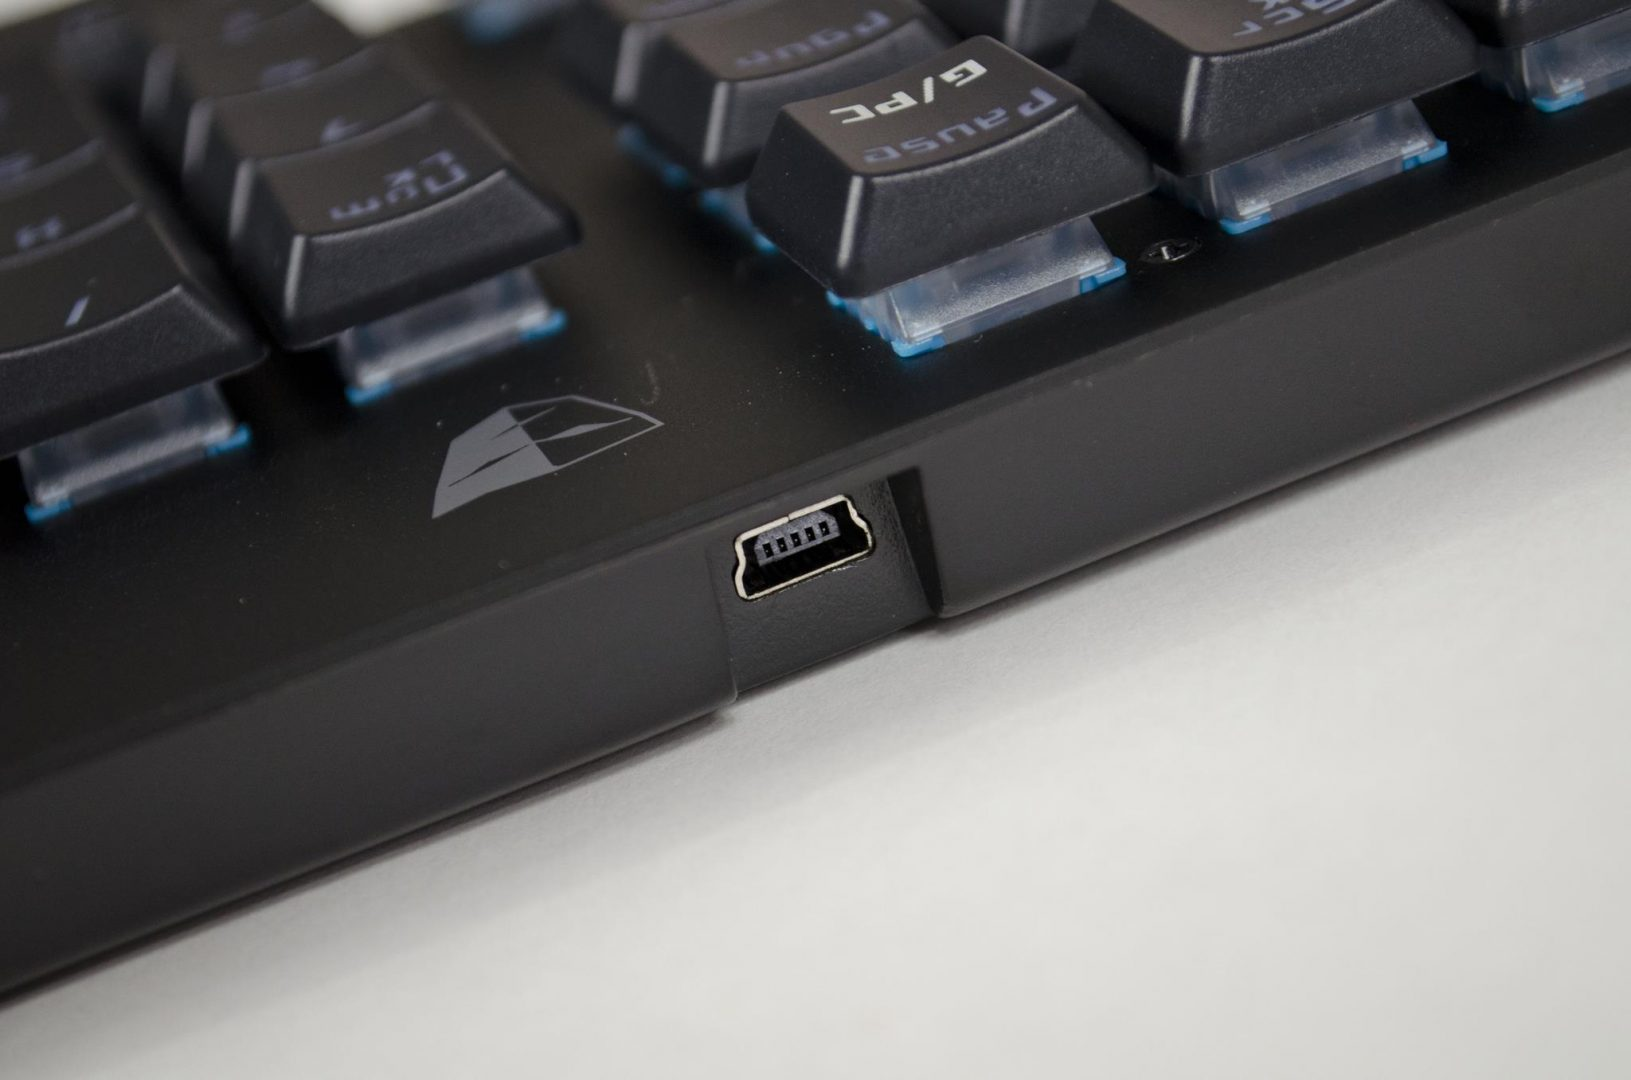 tesoro-gram-spectrum-rgm-gaming-mechanical-keyboard-review_16